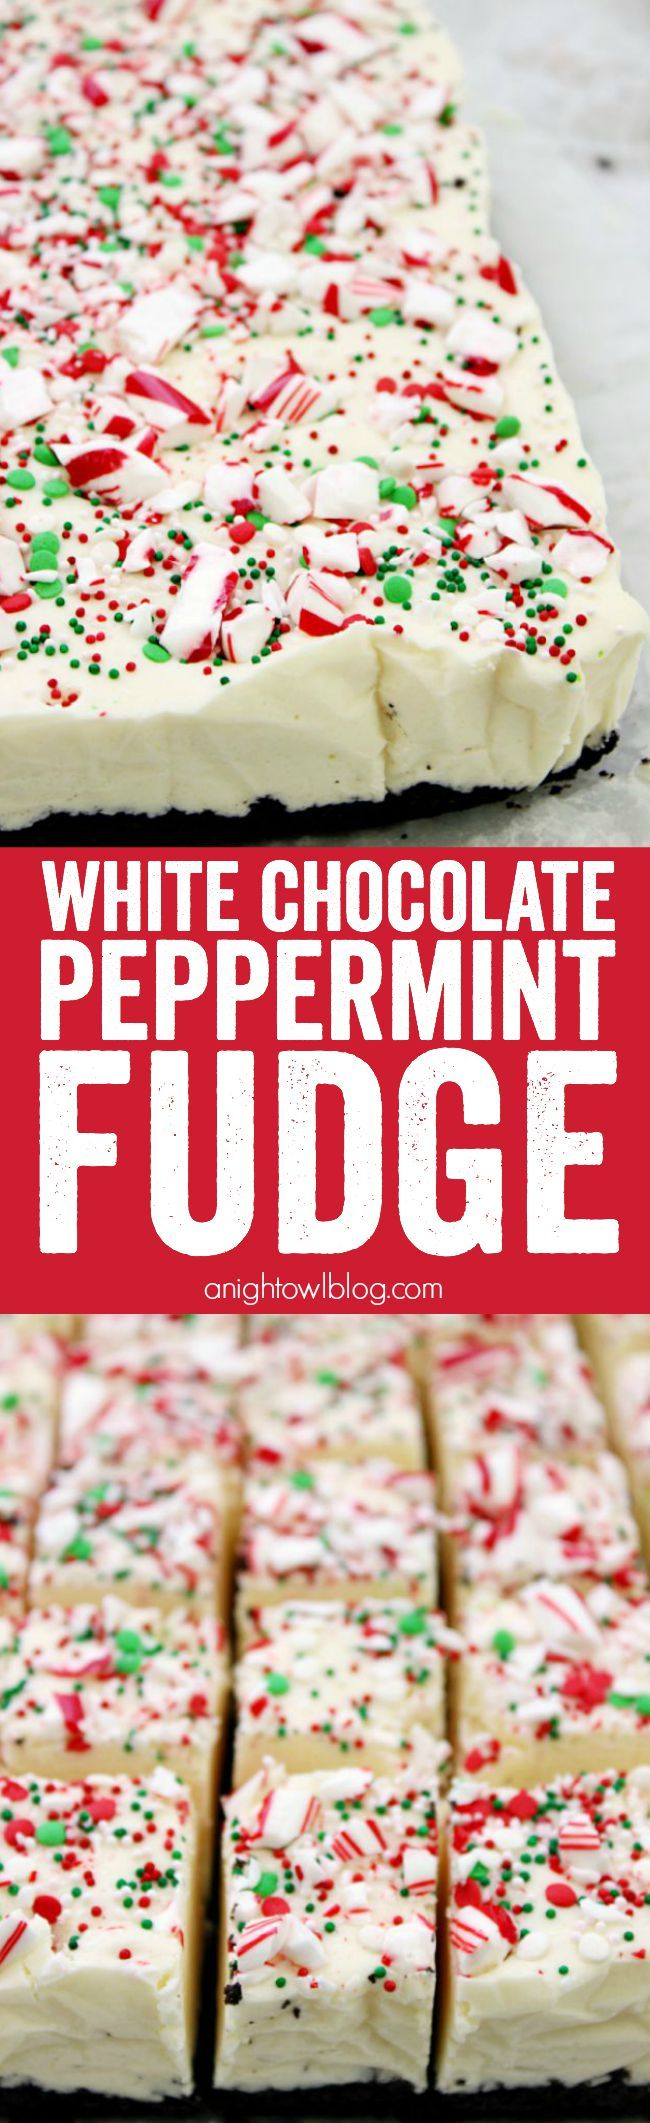 This White Chocolate Peppermint Fudge is a decadent, but easy, fudge recipe perfect for the holiday season. It also makes a great gift idea! MichaelsMakers A Night Owl Blog